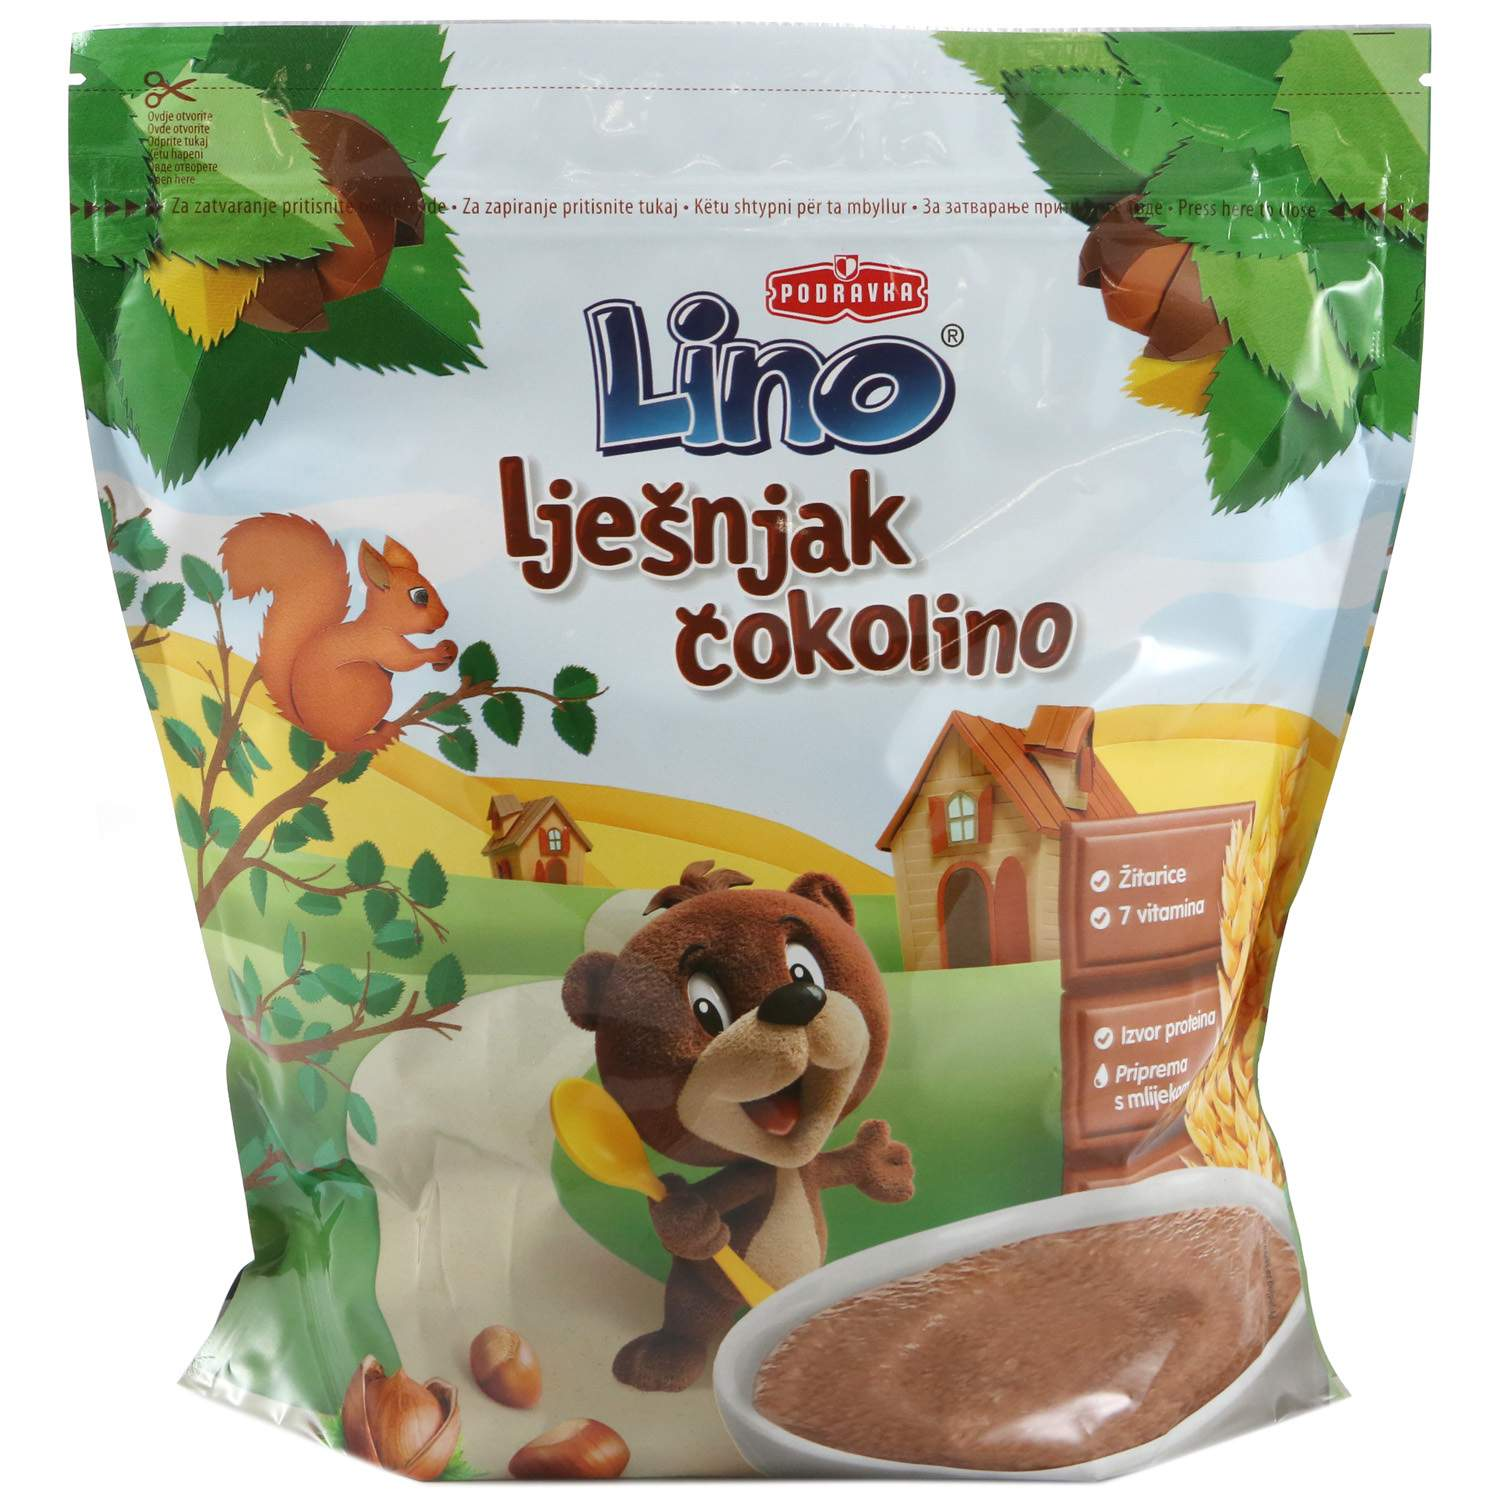 Cokolino - Cereal Flakes with Hazelnut and Chocolate 2 x 500gr